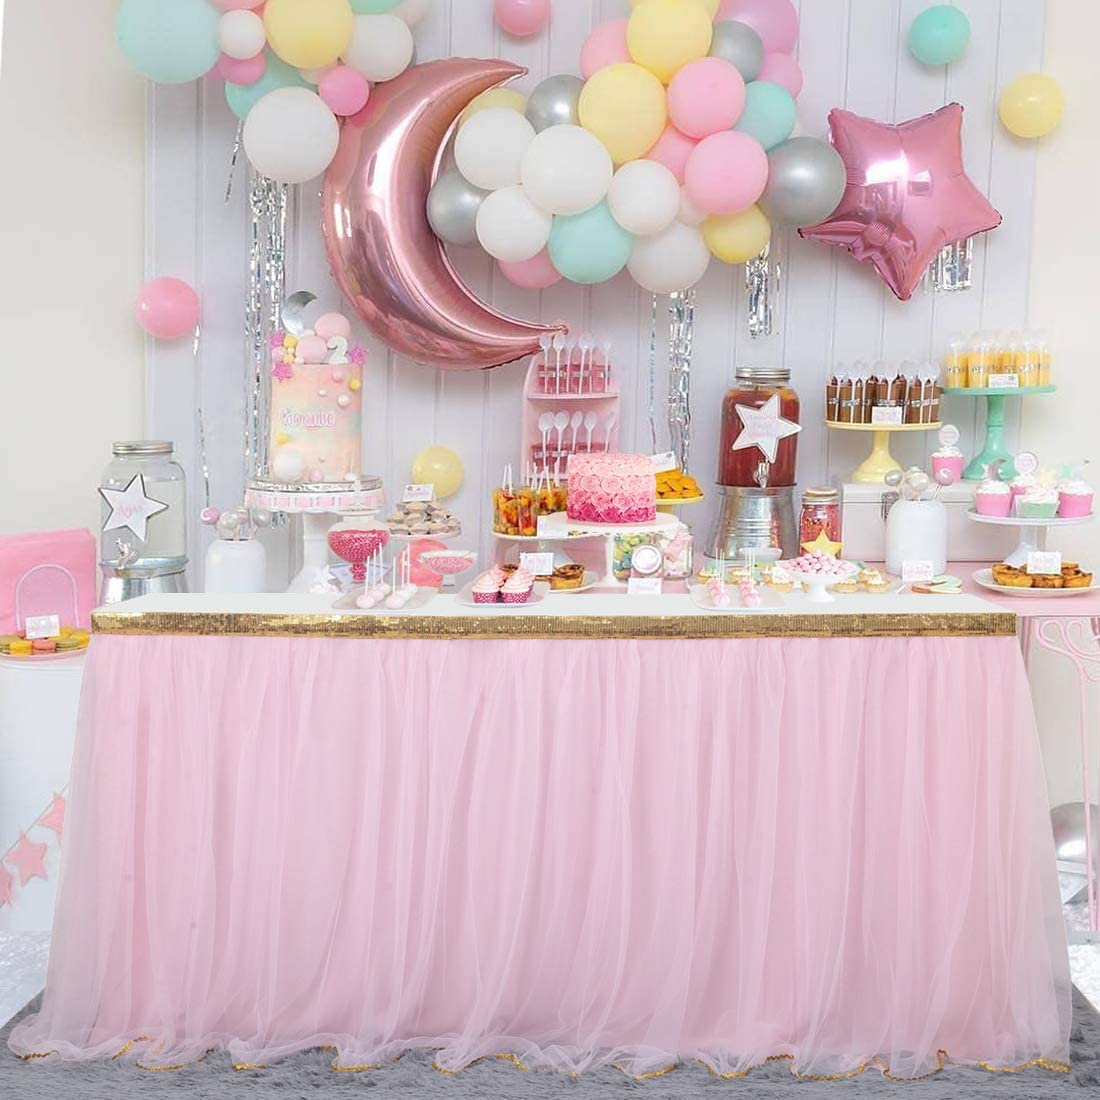 Besutolife Pink Tutu Table Skirt Tulle Table Skirts for Rectangle Tables Girl Baby Shower Princess Birthday Unicorn Party 14 ft